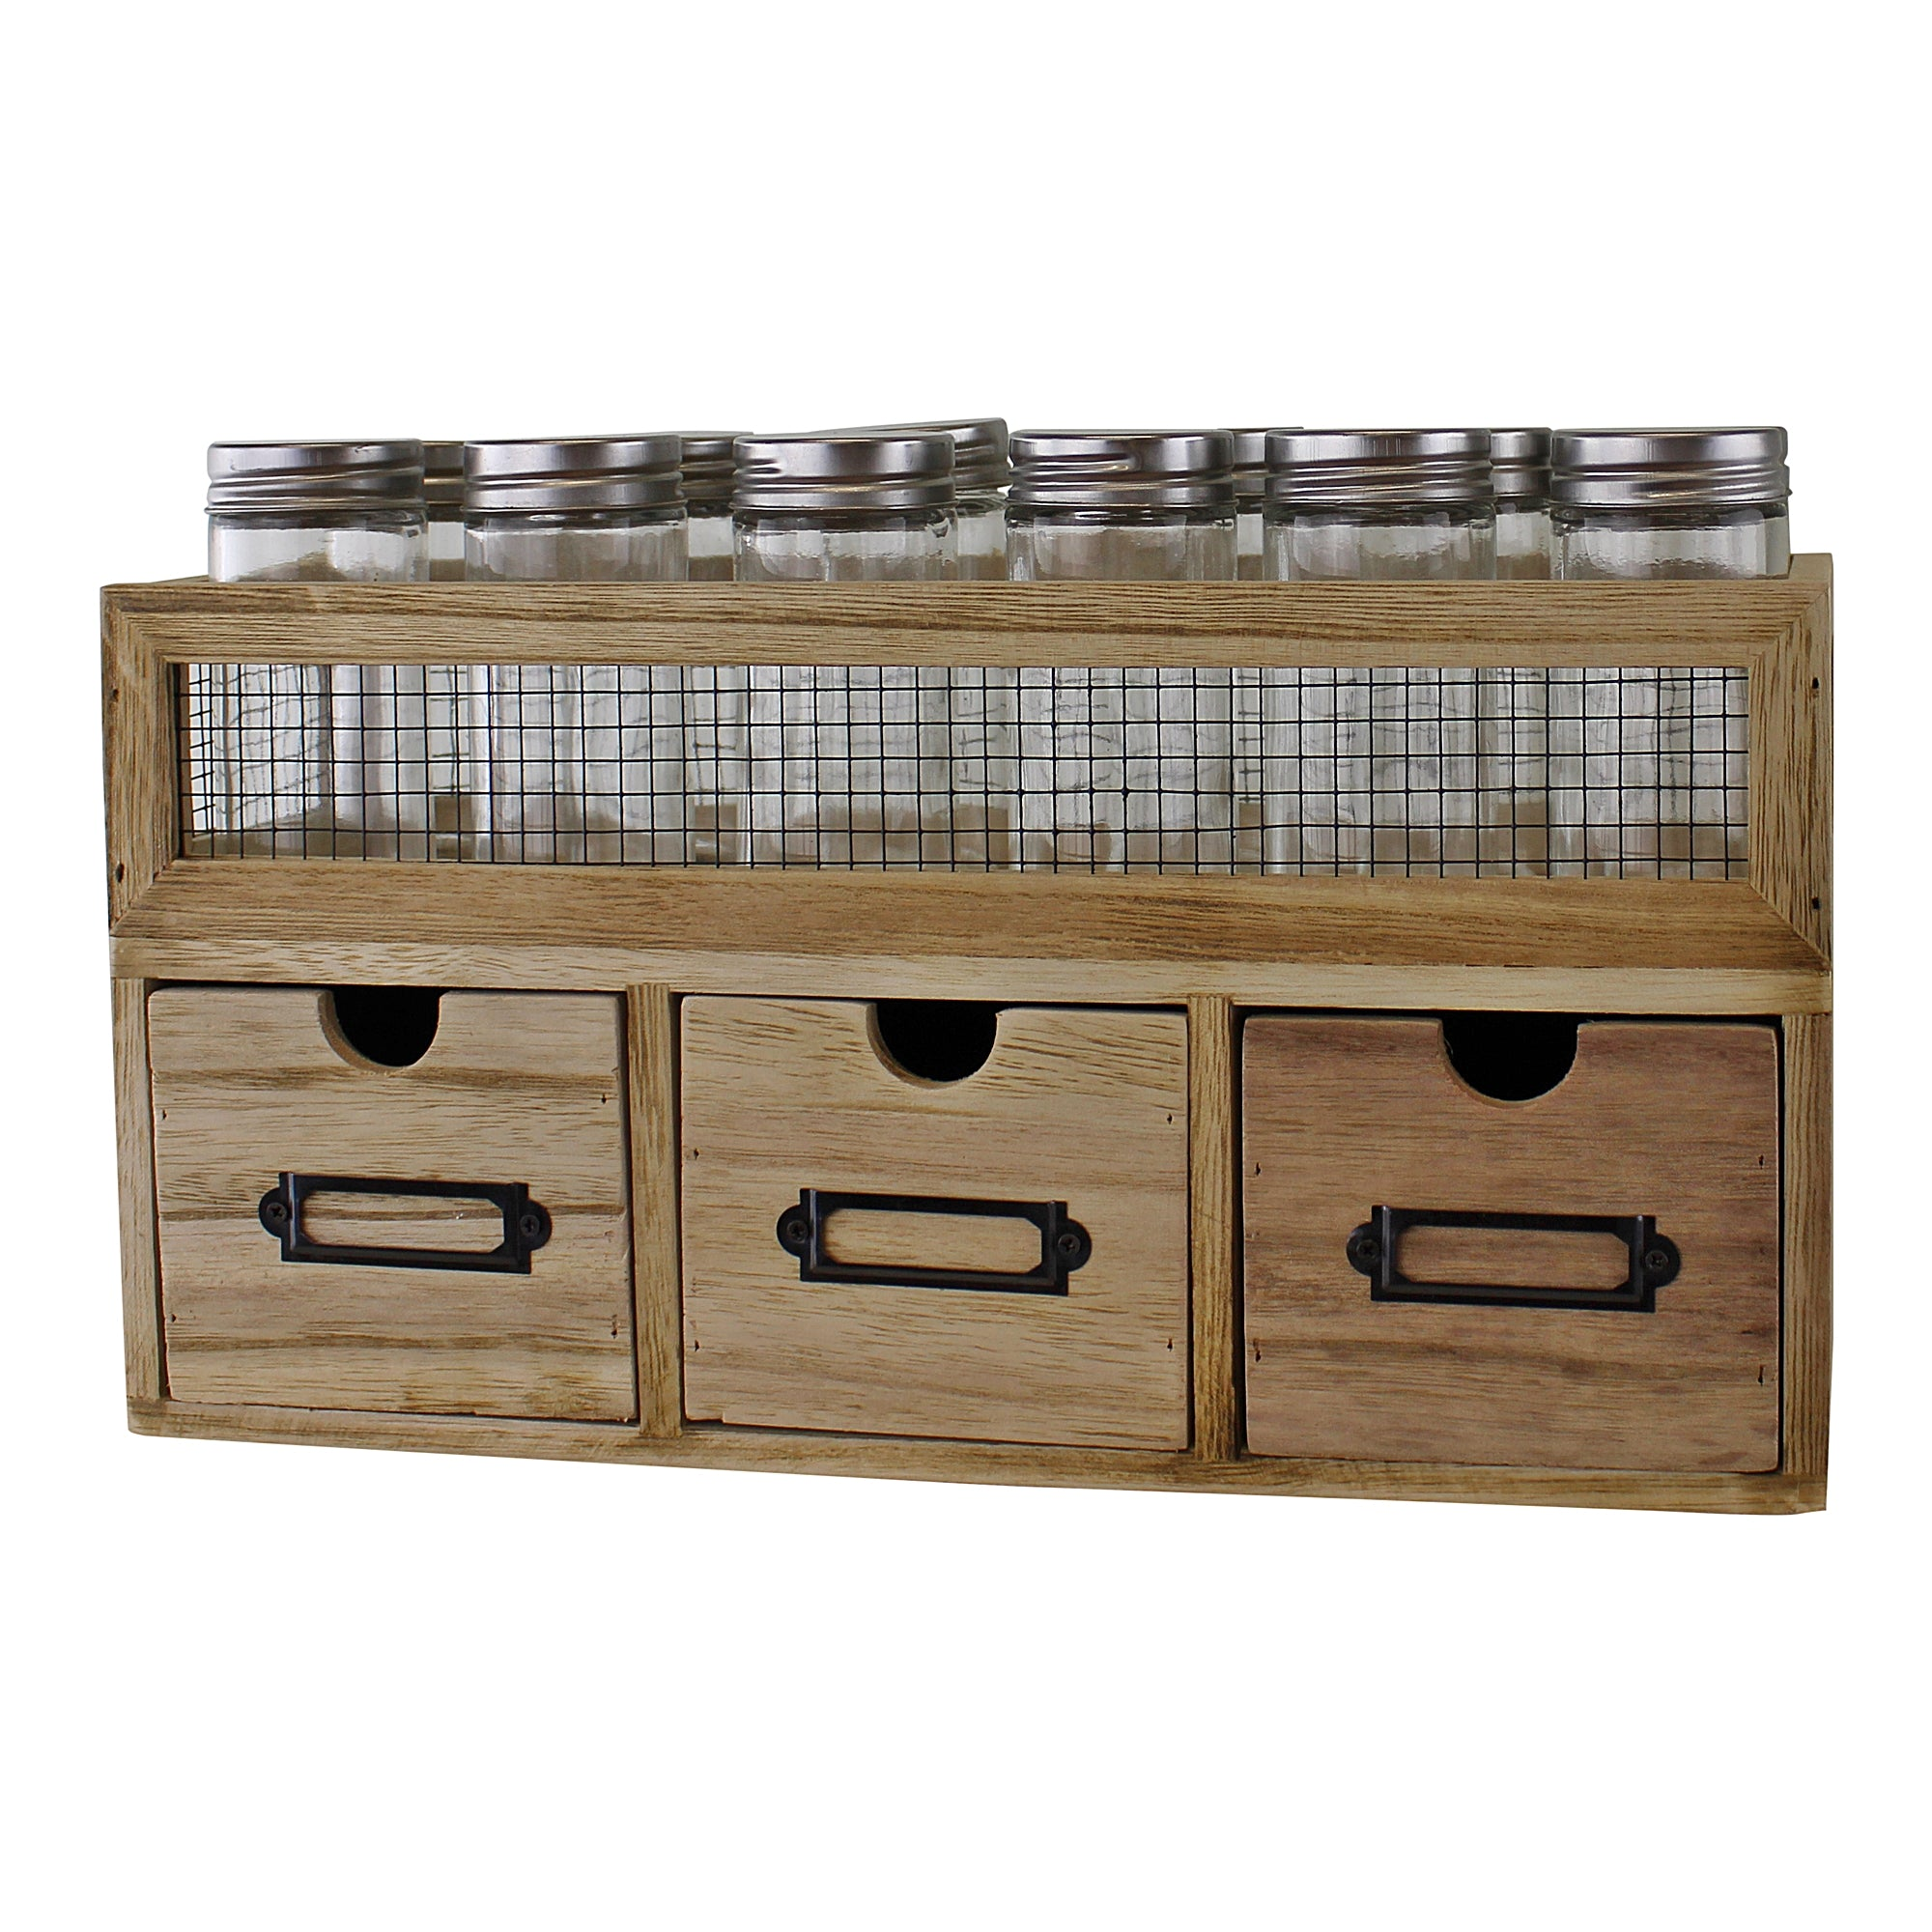 12 Jar Freestanding Spice Rack With Bottles & 3 Drawer Cabinet, Furniture by Low Cost Gifts